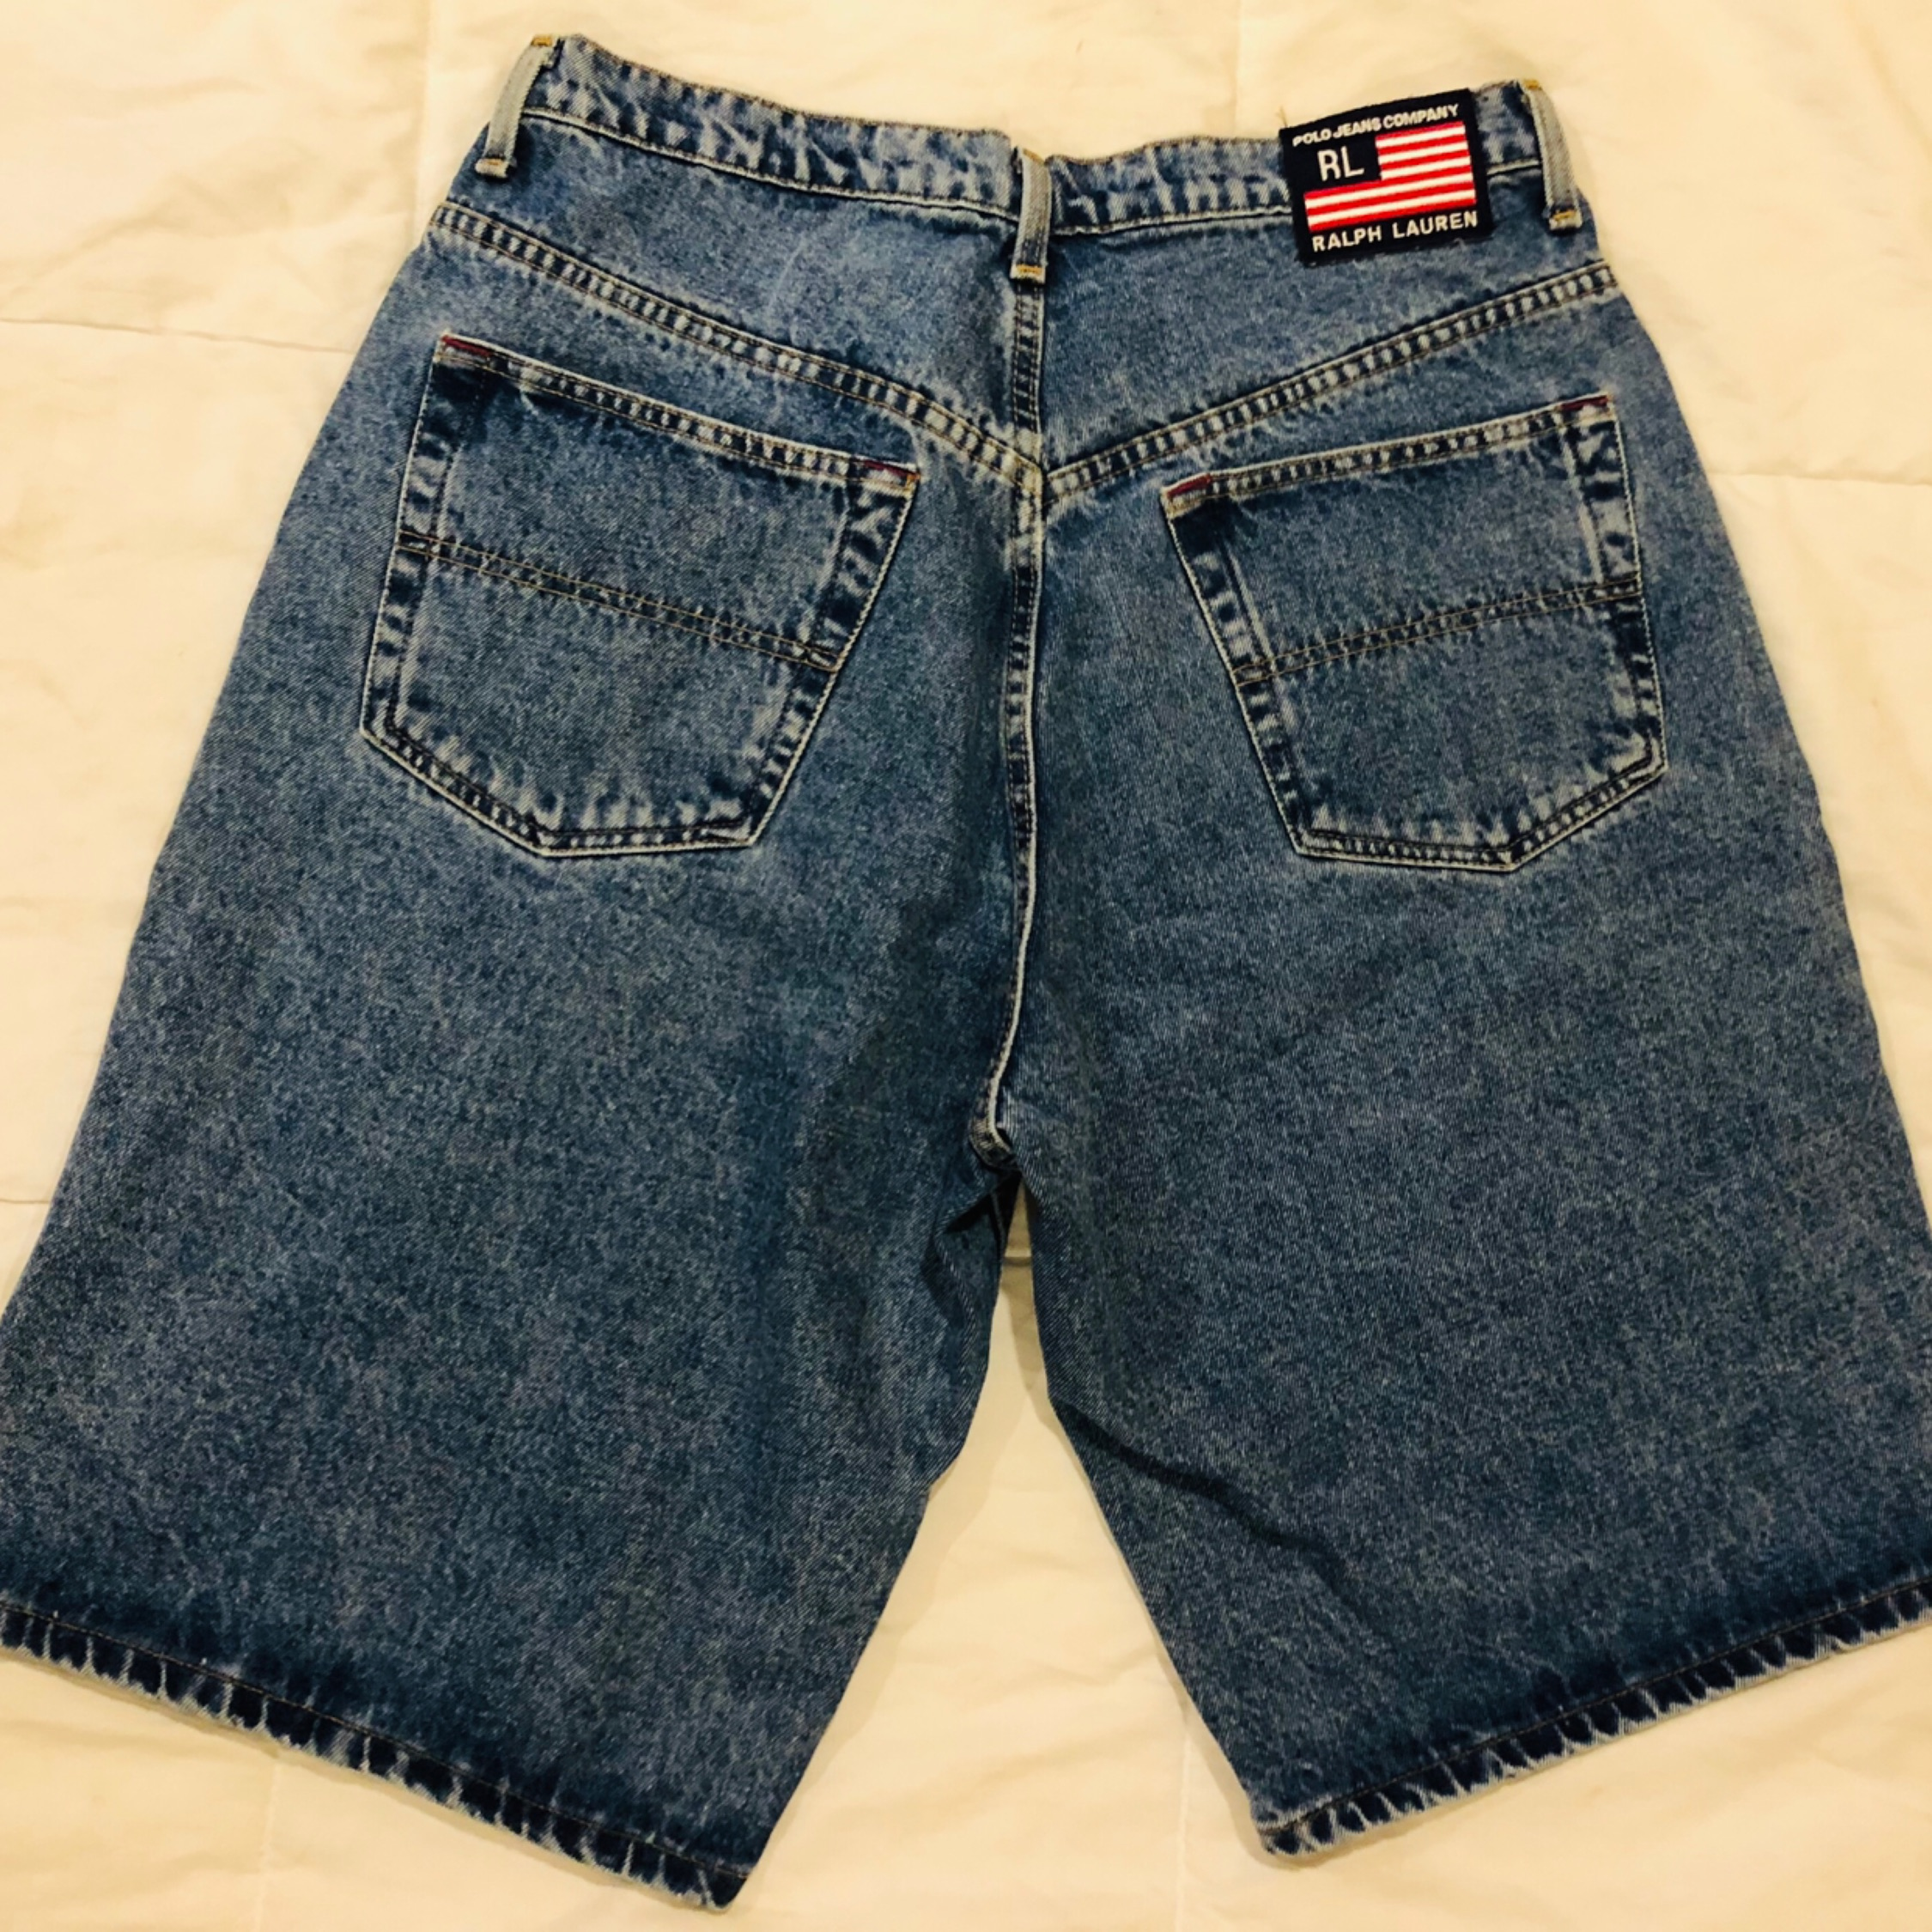 13a39fb6 Vintage Polo Jeans Company Men's Jean Shorts